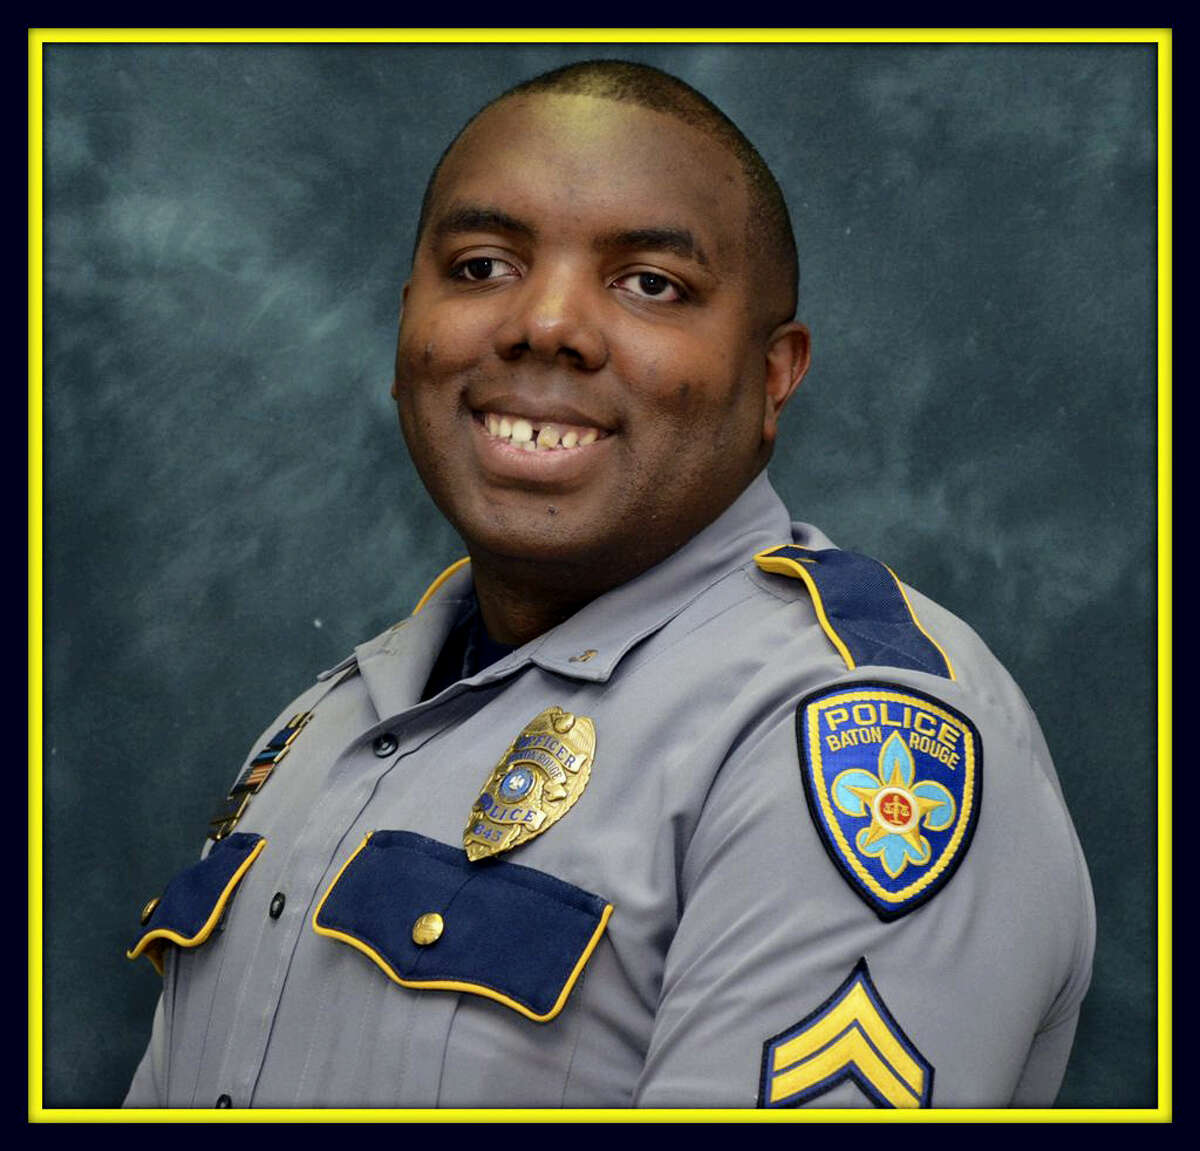 This undated photo made available by the Baton Rouge Police Dept. shows officer Montrell Jackson. Funeral services are planned Monday, July 25, 2016 for police officer Montrell Jackson, a 32-year-old slain by a gunman who authorities said targeted law enforcement.